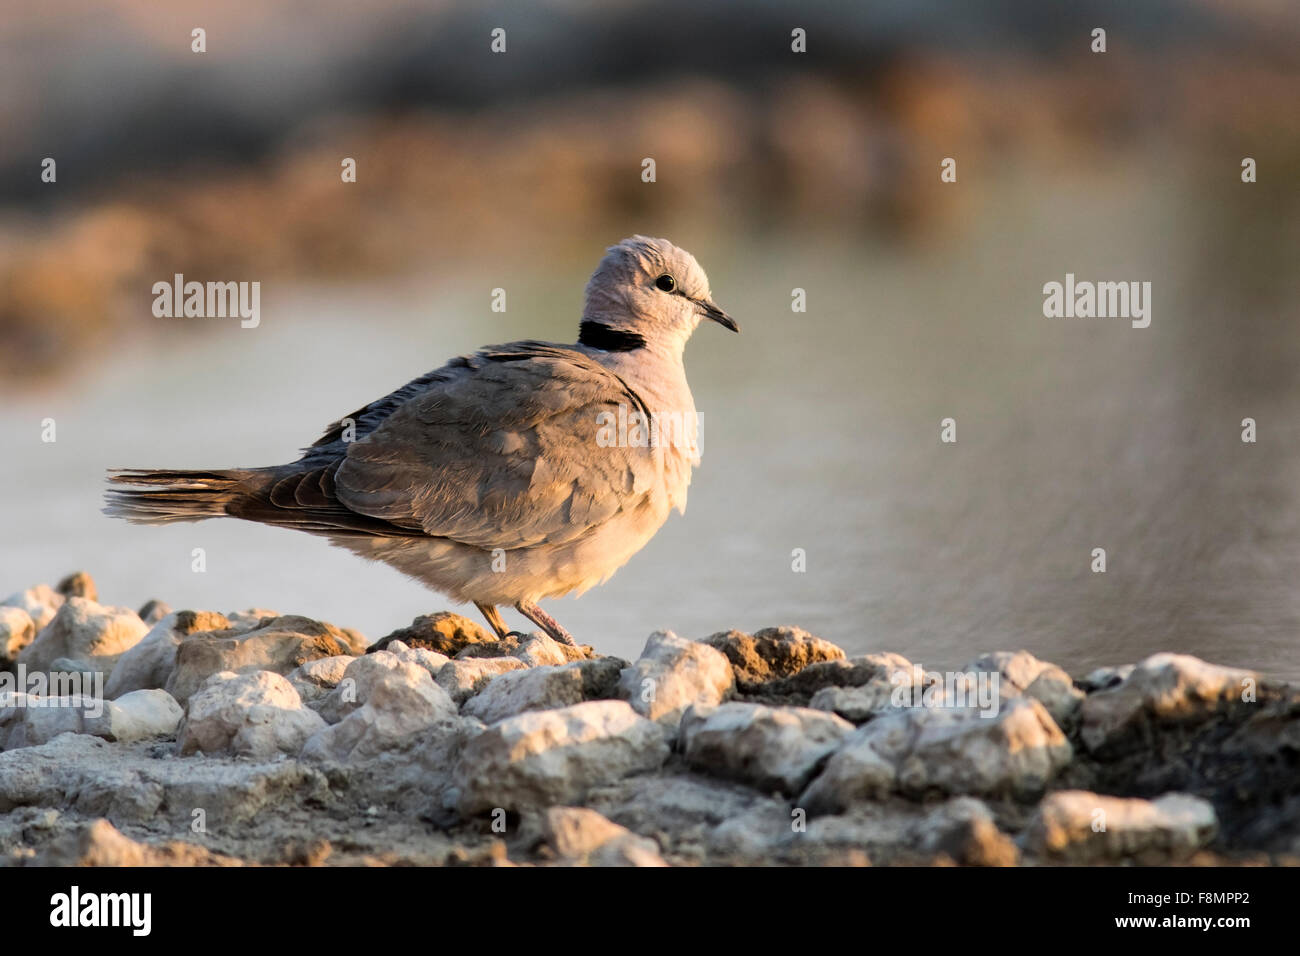 Ring-necked Dove (Streptopelia capicola) or Cape Turtle Dove - Andersson's Camp - near Etosha National Park, - Stock Image